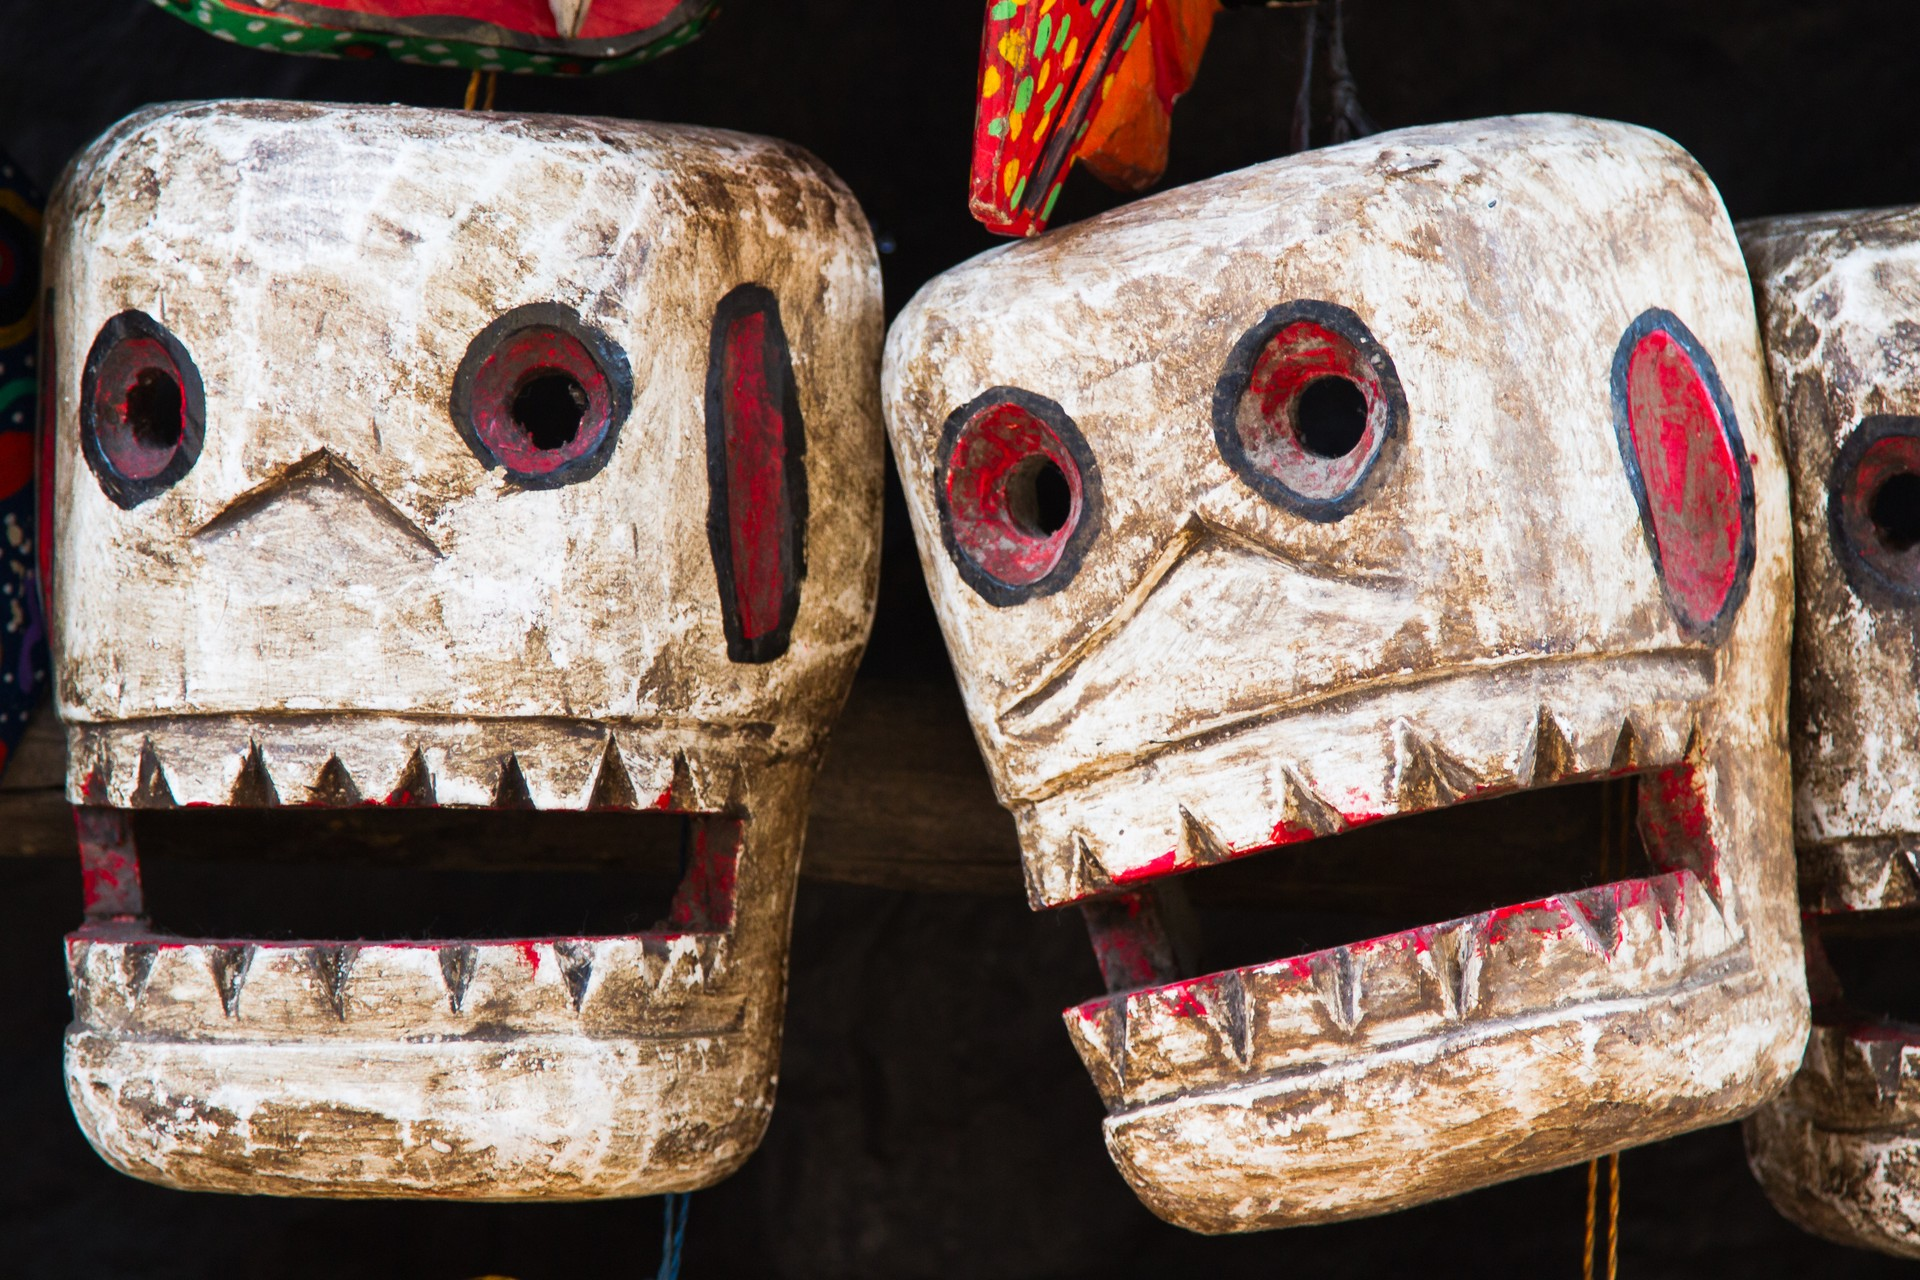 Day of the dead decorations in Guatemala